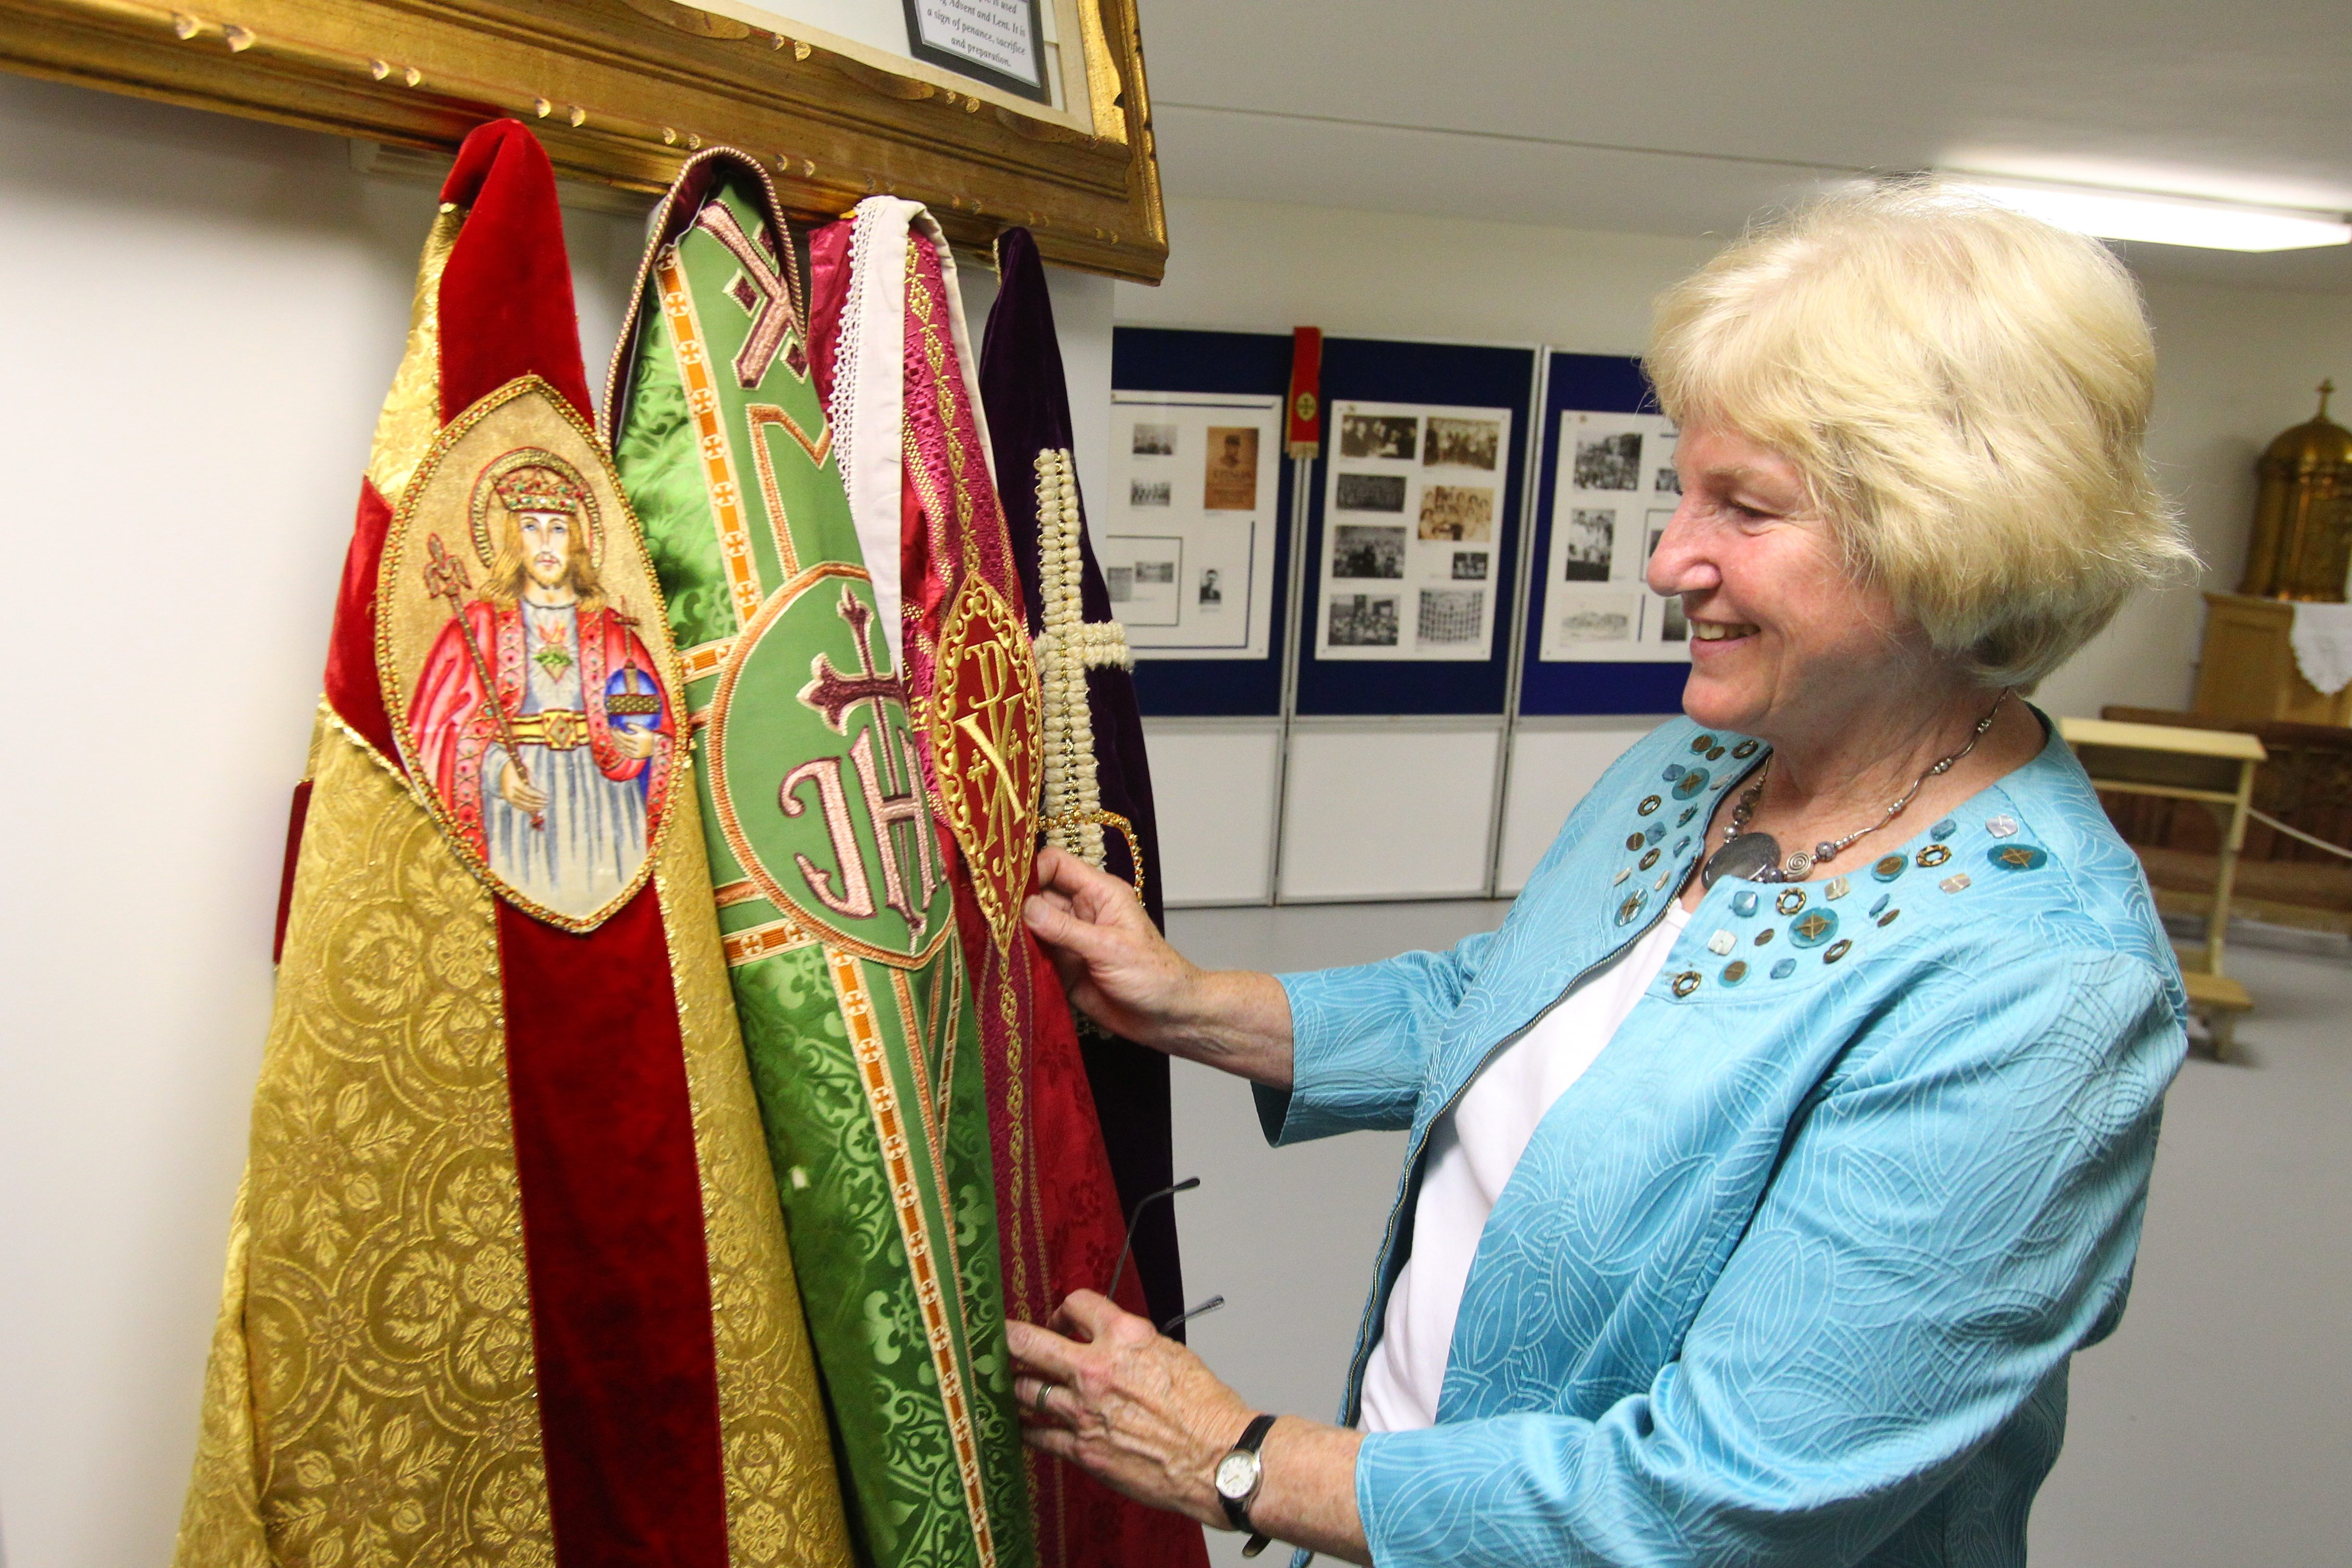 """What calls out to me is the richness of the vestments,"" says Karen Krajewski, who helped assemble the new museum."